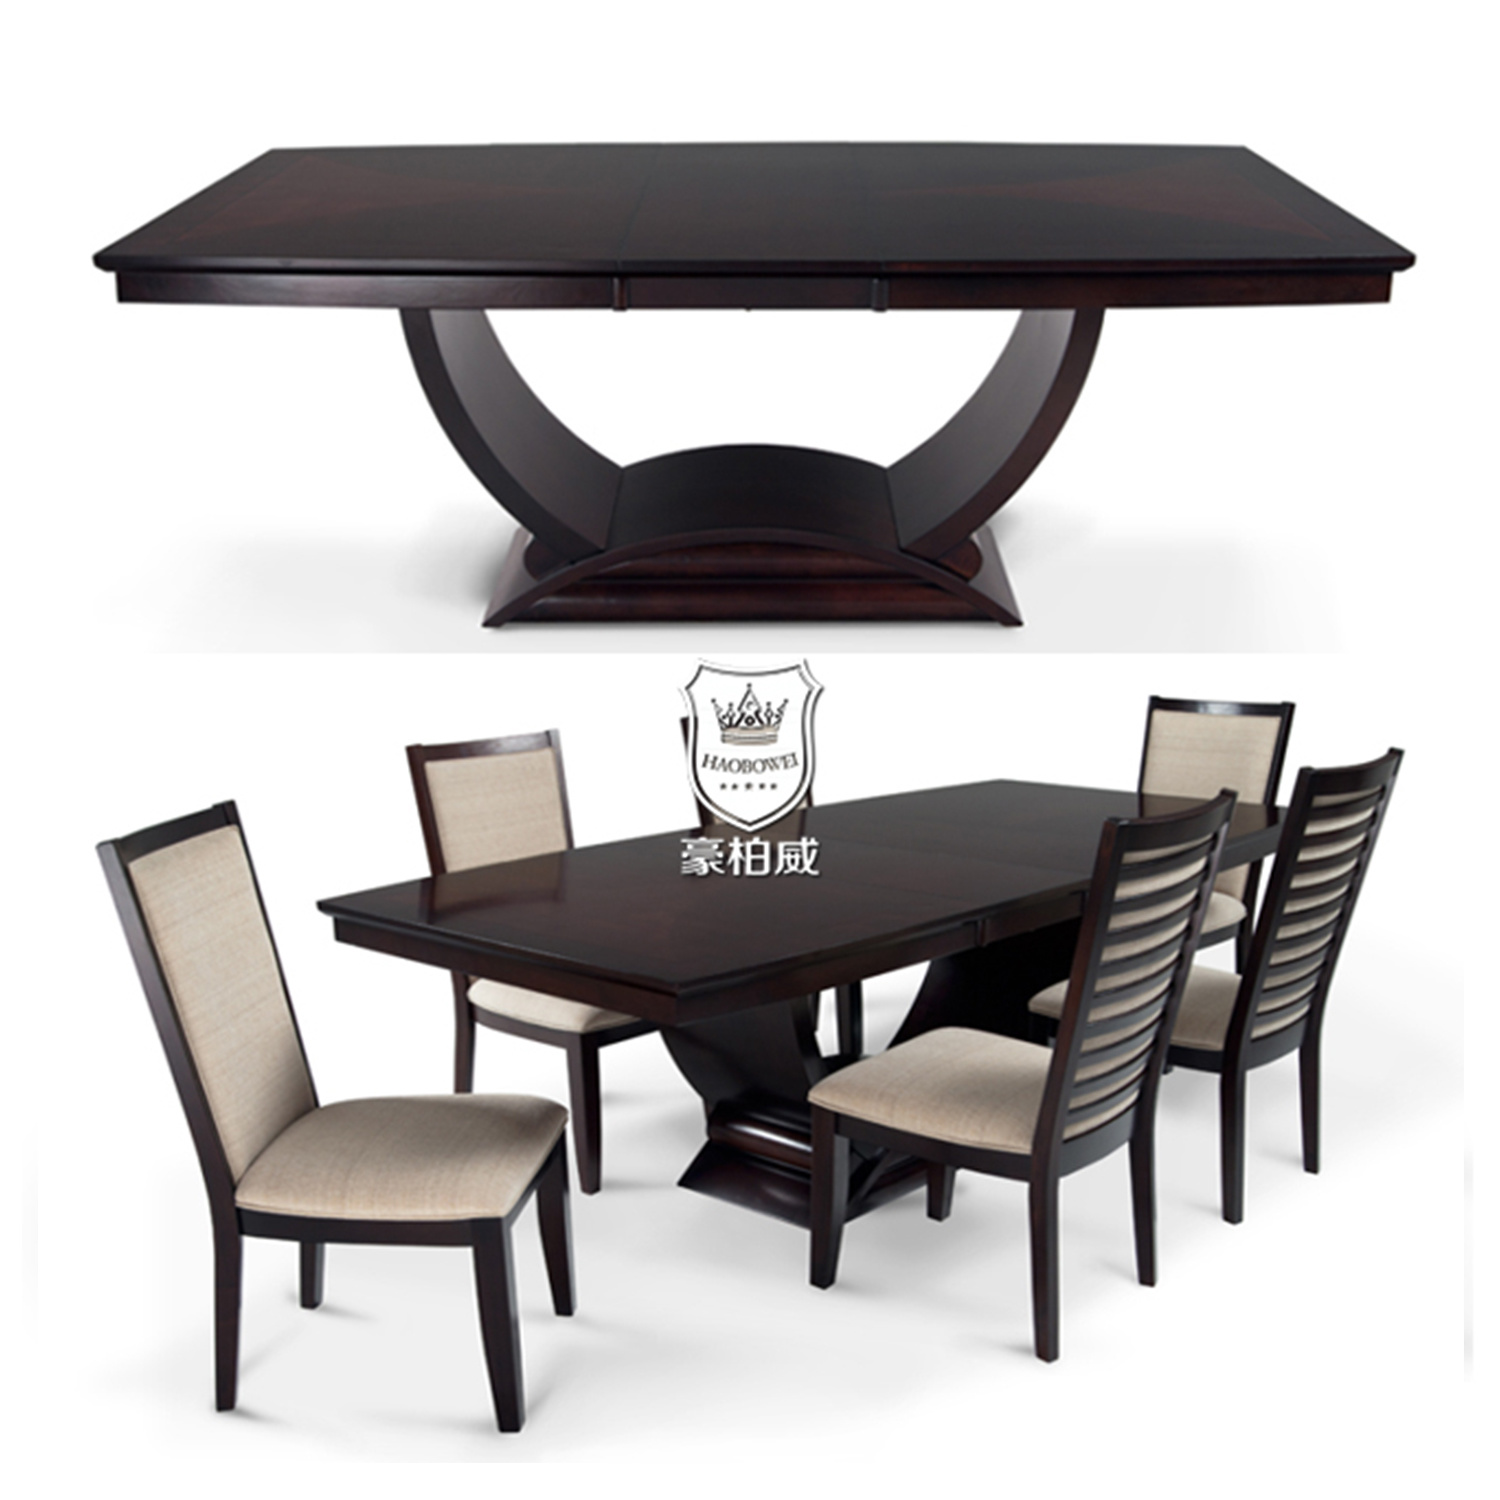 Dining Table Set Unit Furniture, Wooden Dining Room Table And 8 Chairs